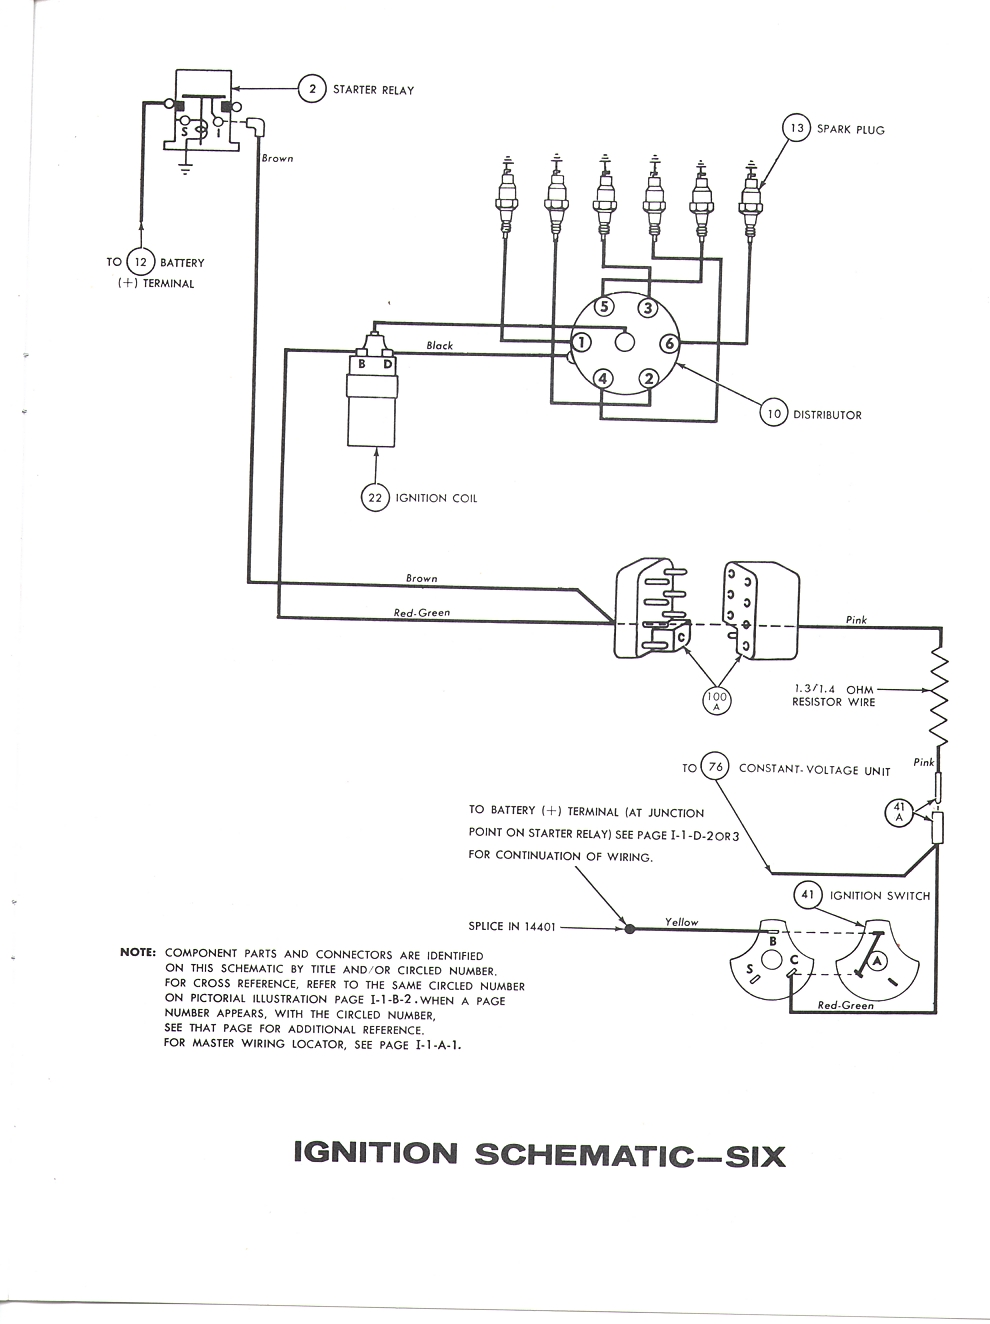 Ford F Thru F Truck Master Wiring besides Ignition also Fig B moreover Diagram Domecargo To in addition Shelbytach. on ford falcon ignition switch wiring diagram